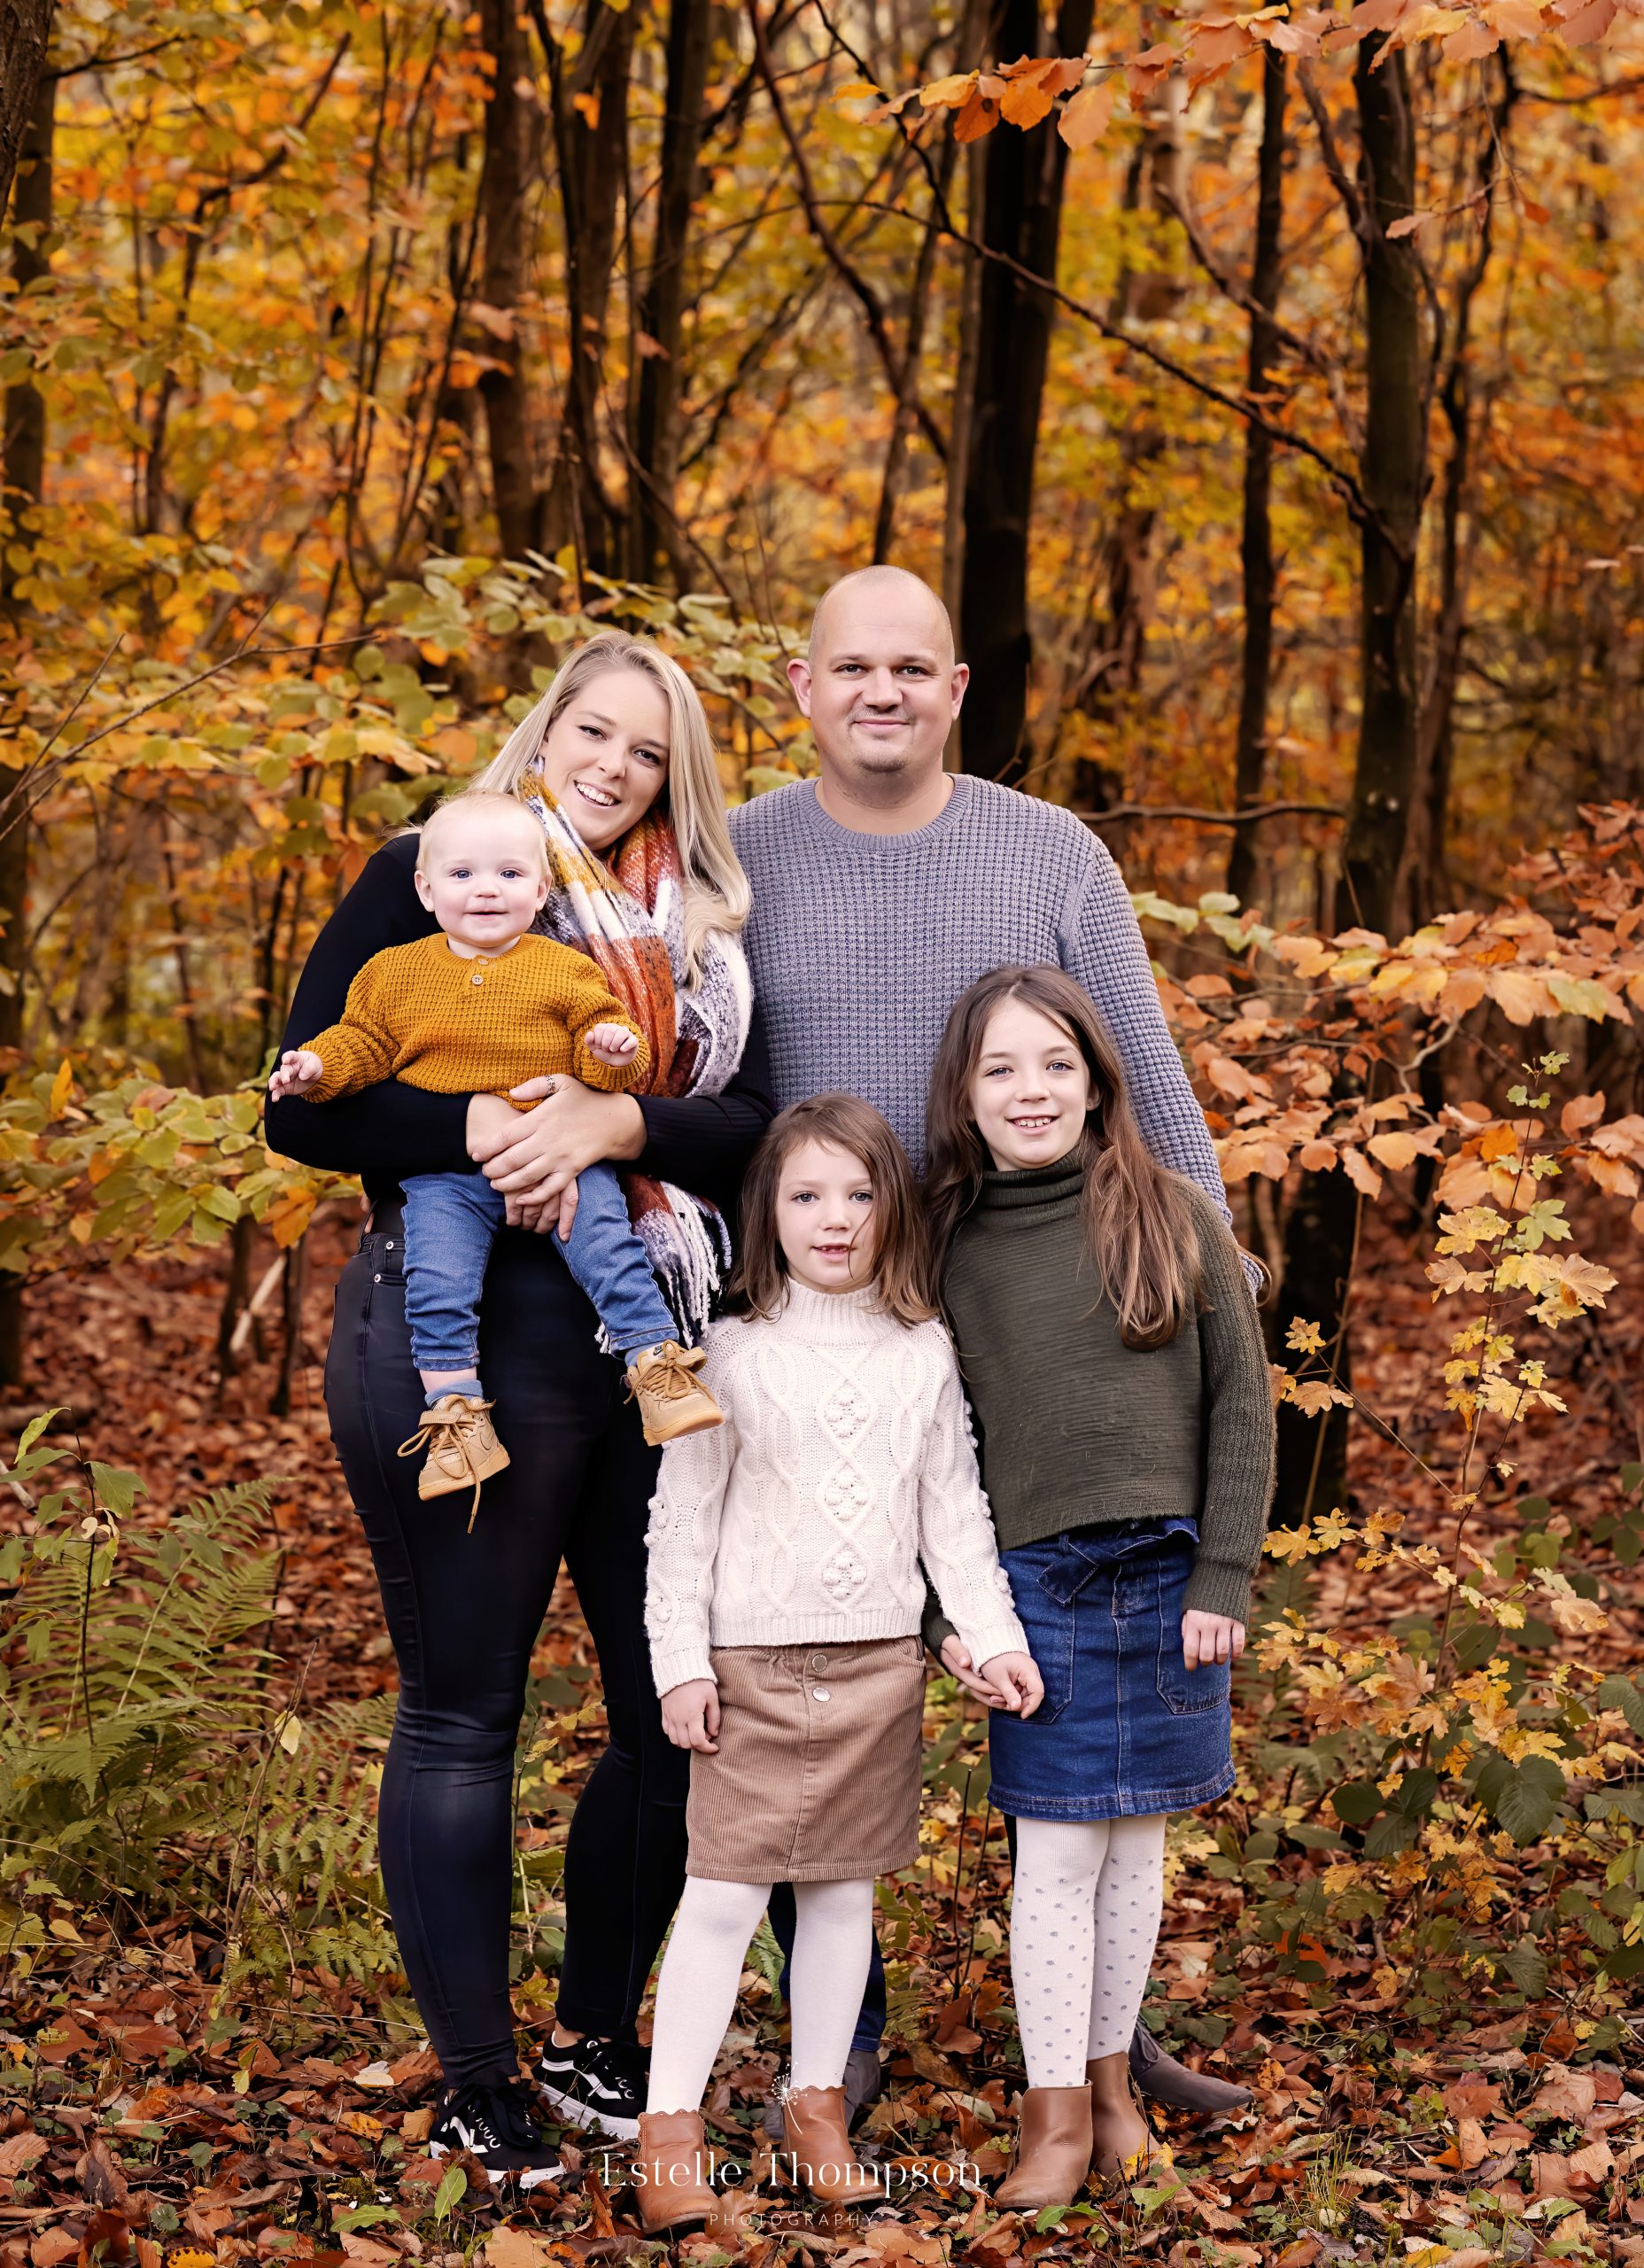 A family stand in the woods in Autumn for a Sevenoaks family photoshoot